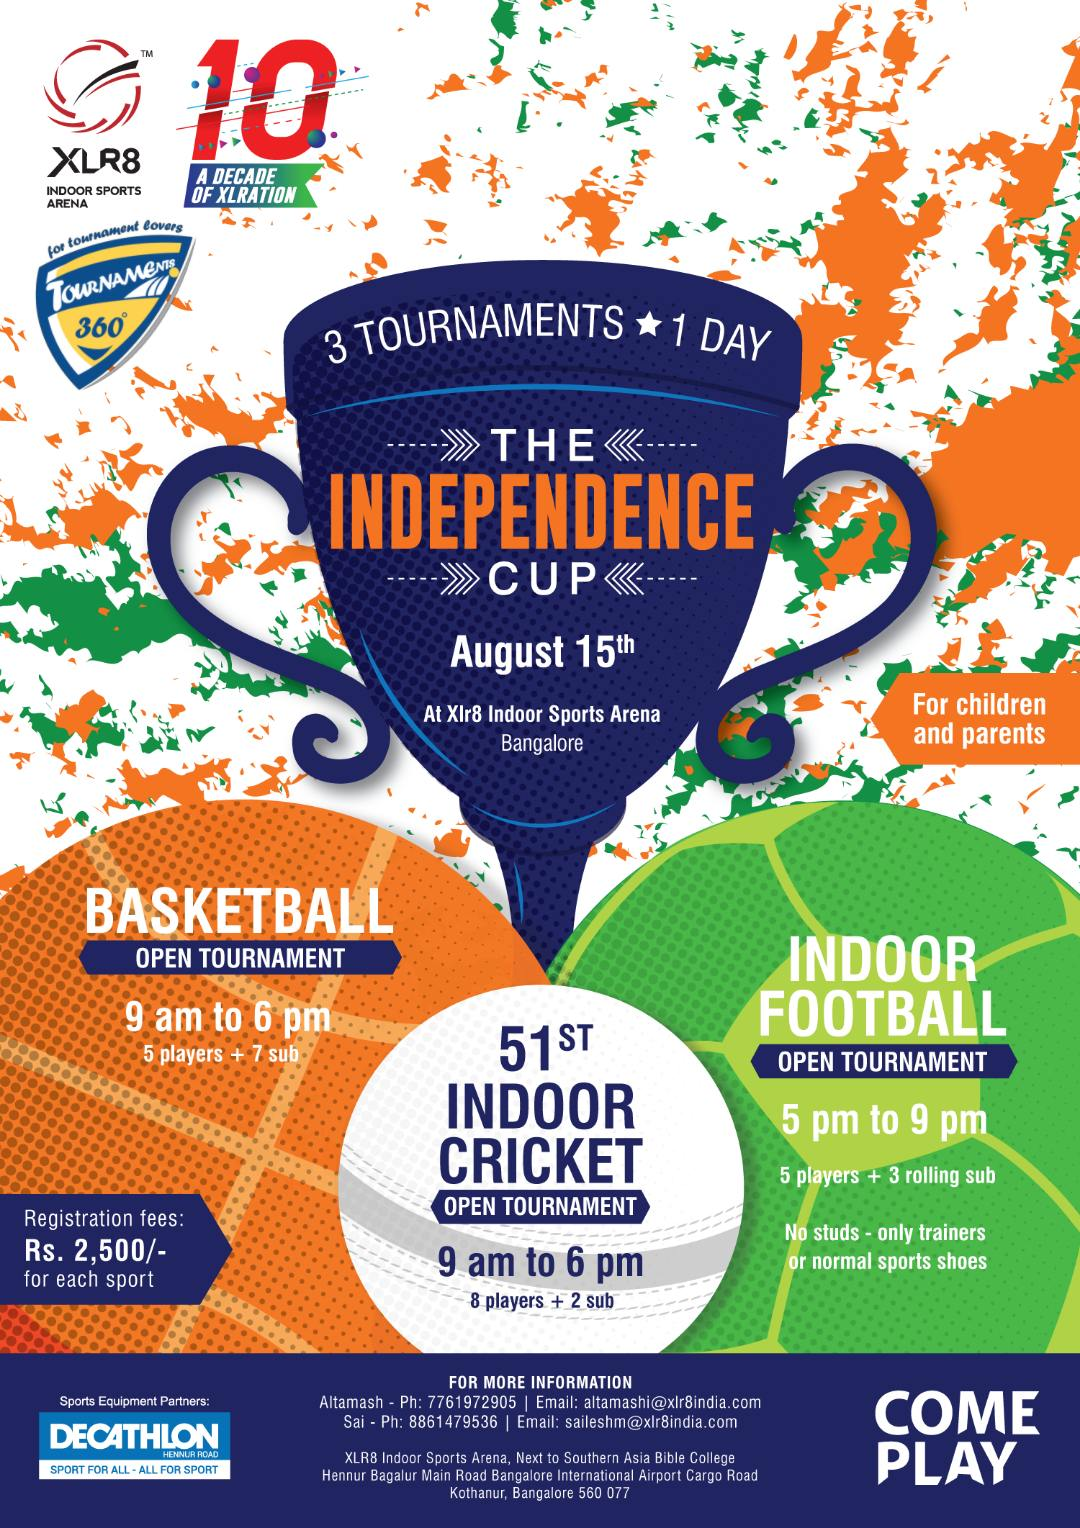 The Independence Cup